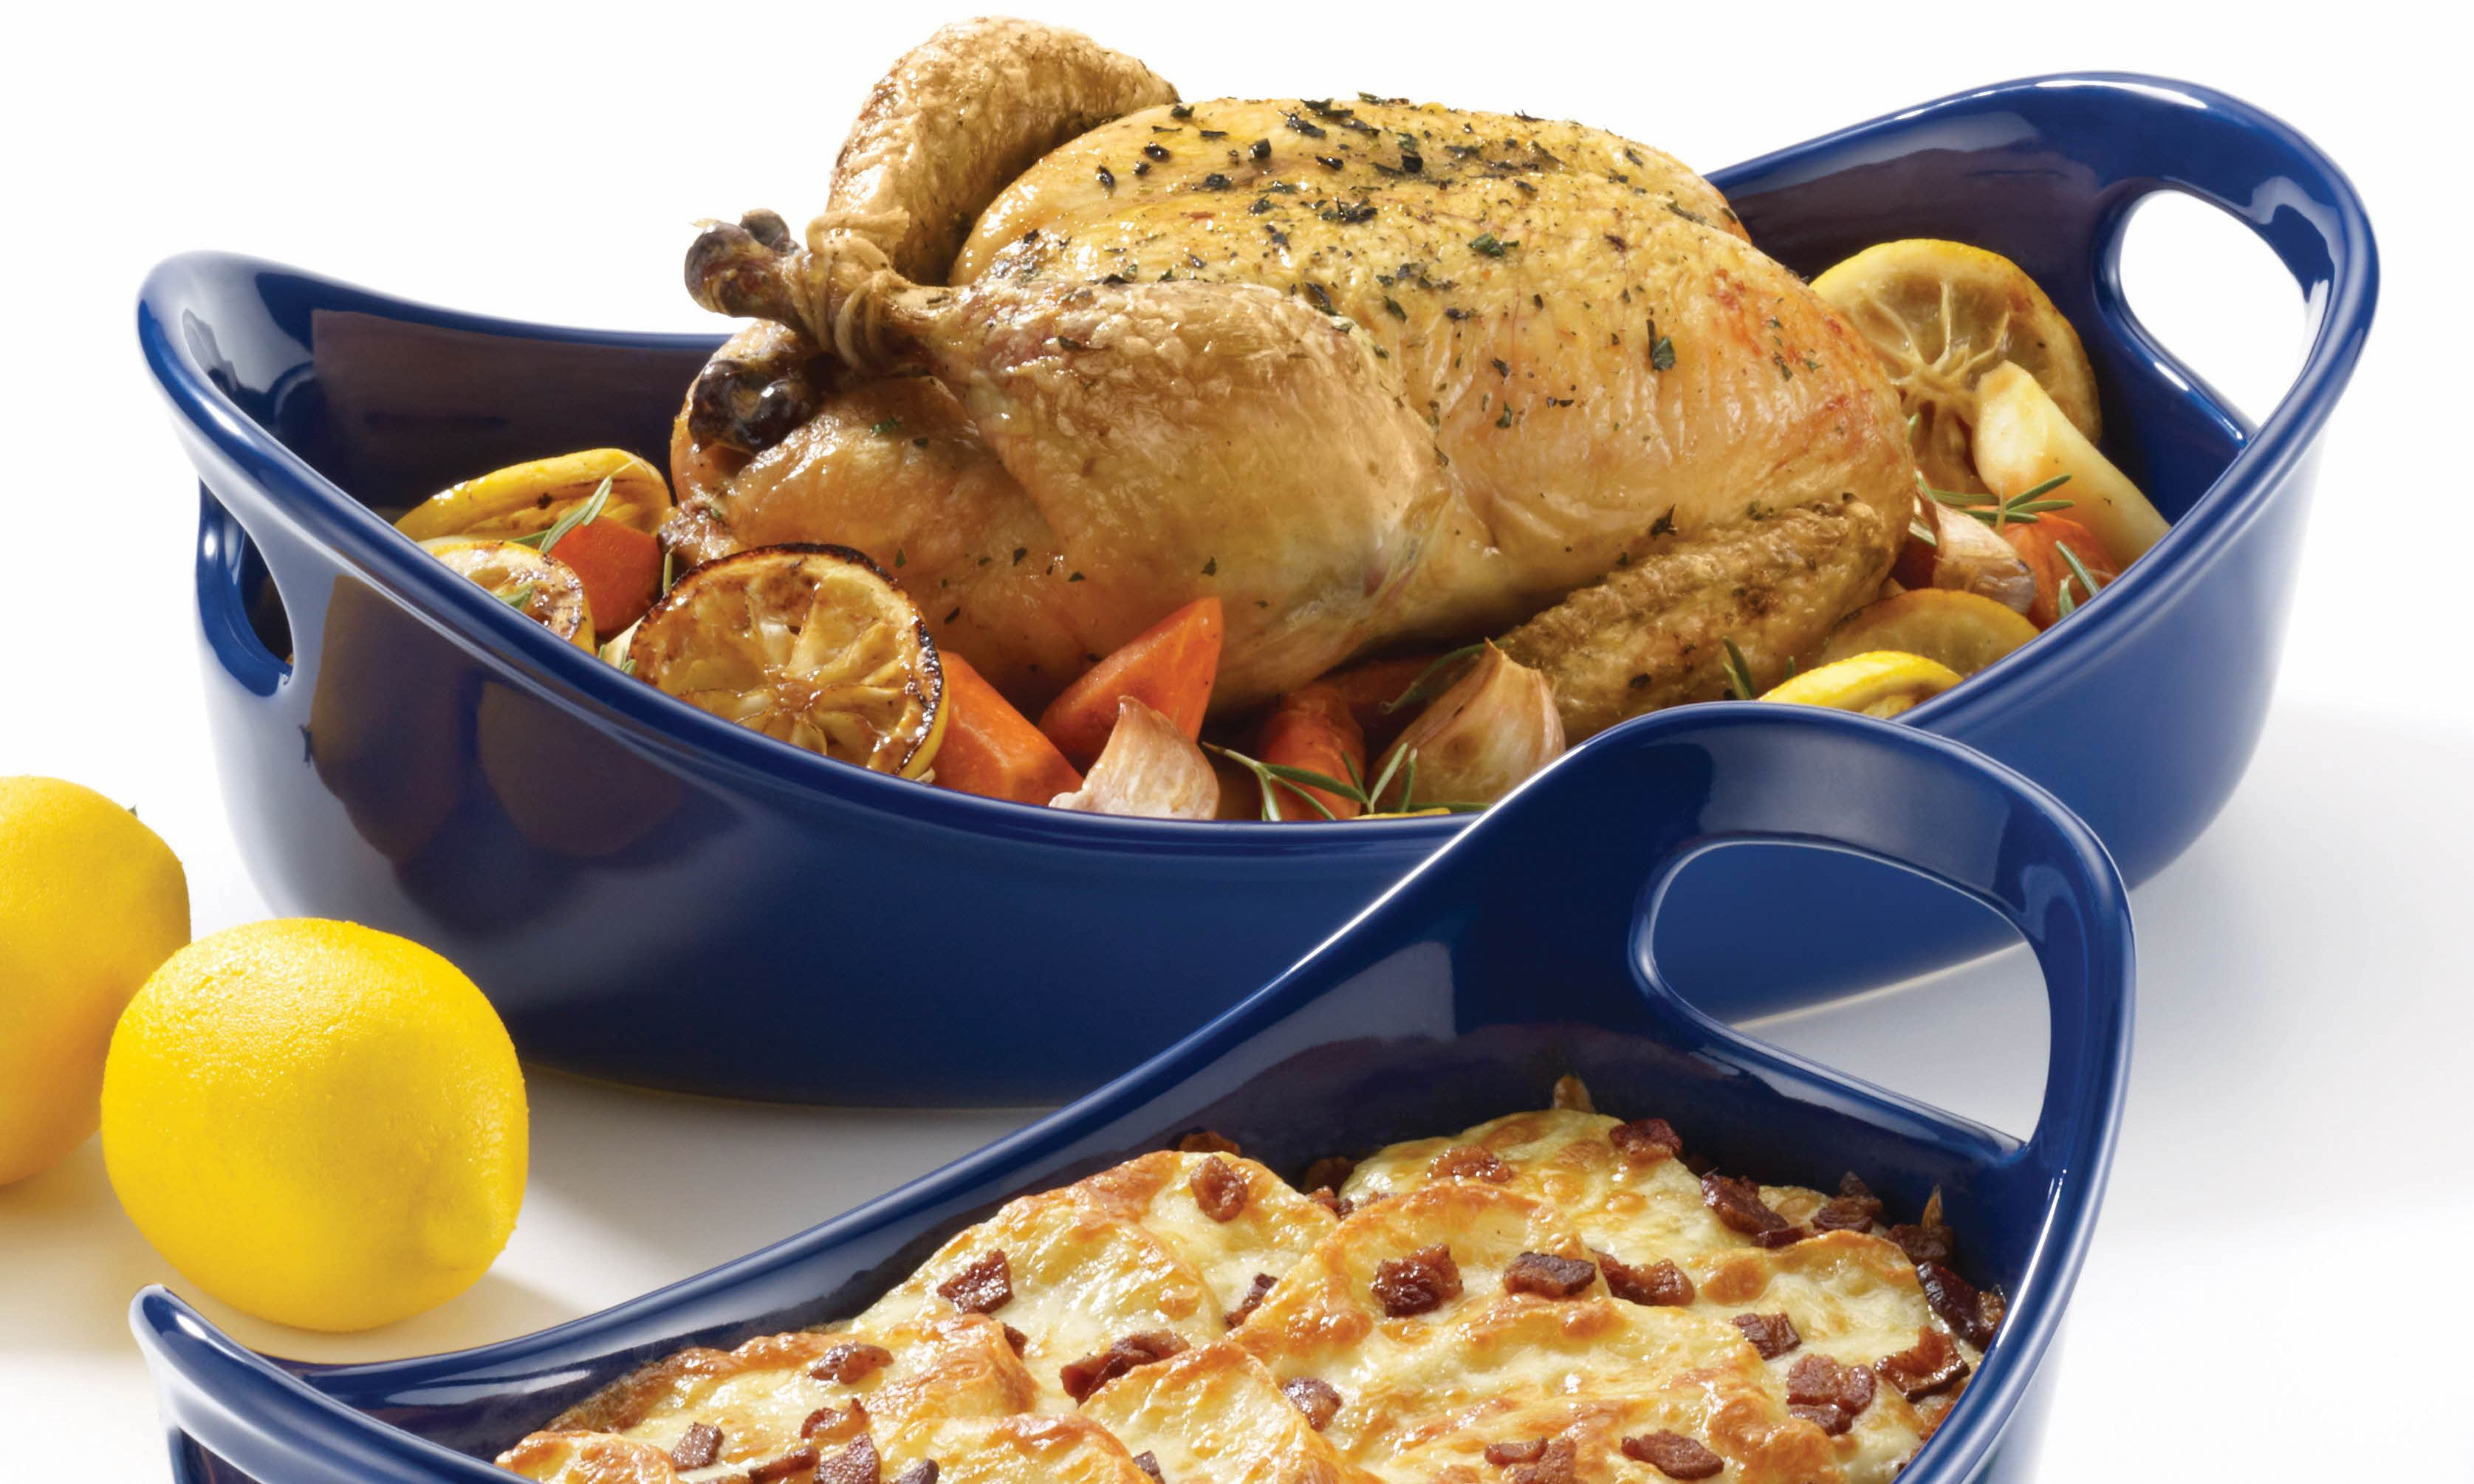 Rachael Ray Stoneware Baking Dishes Are Oven Microwave And Freezer Safe Present Food Beautifully At The Table